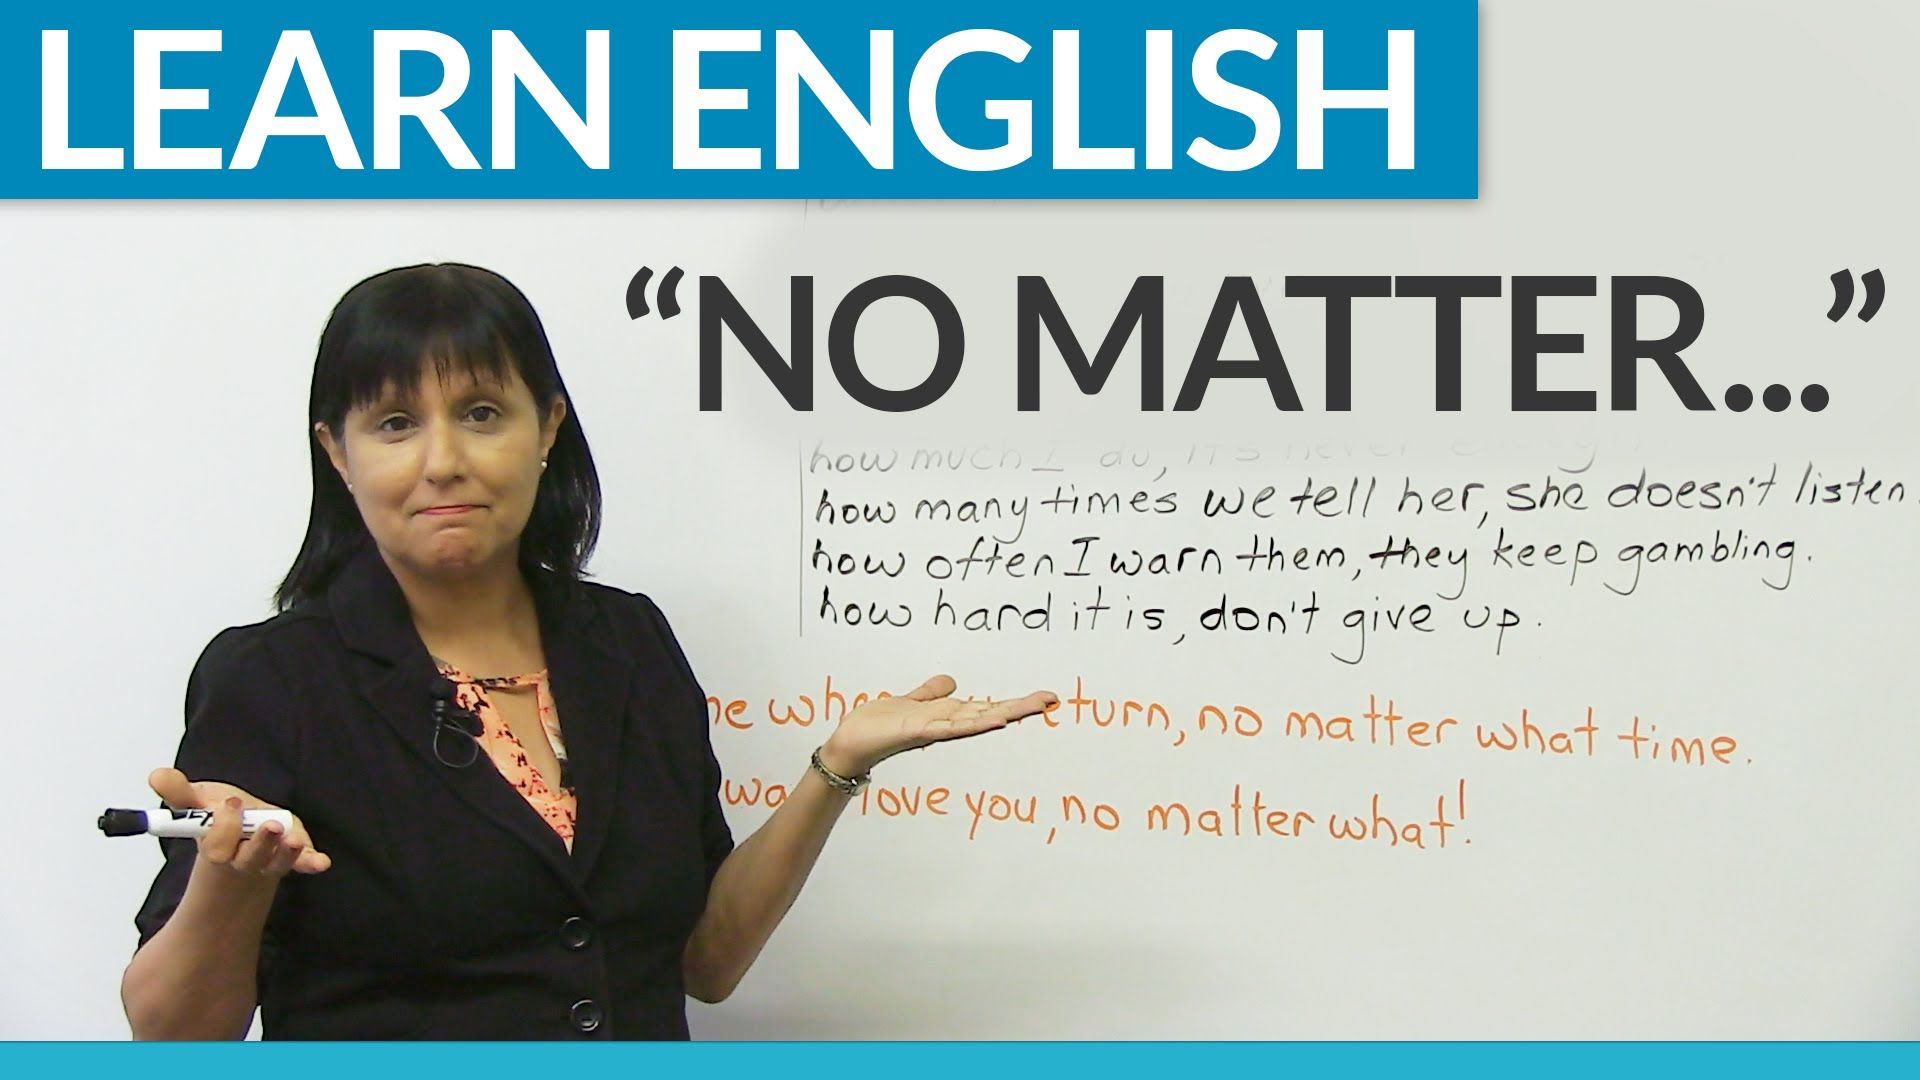 No matter what, no matter when, no matter where…Learn the meaning of this very common expression, and practice how to use it in lots of ways to express different ideas. Each time you learn a new expression, you get closer to becoming a fluent English speaker! No matter what your level of English now, you can improve by watching lessons and practicing.